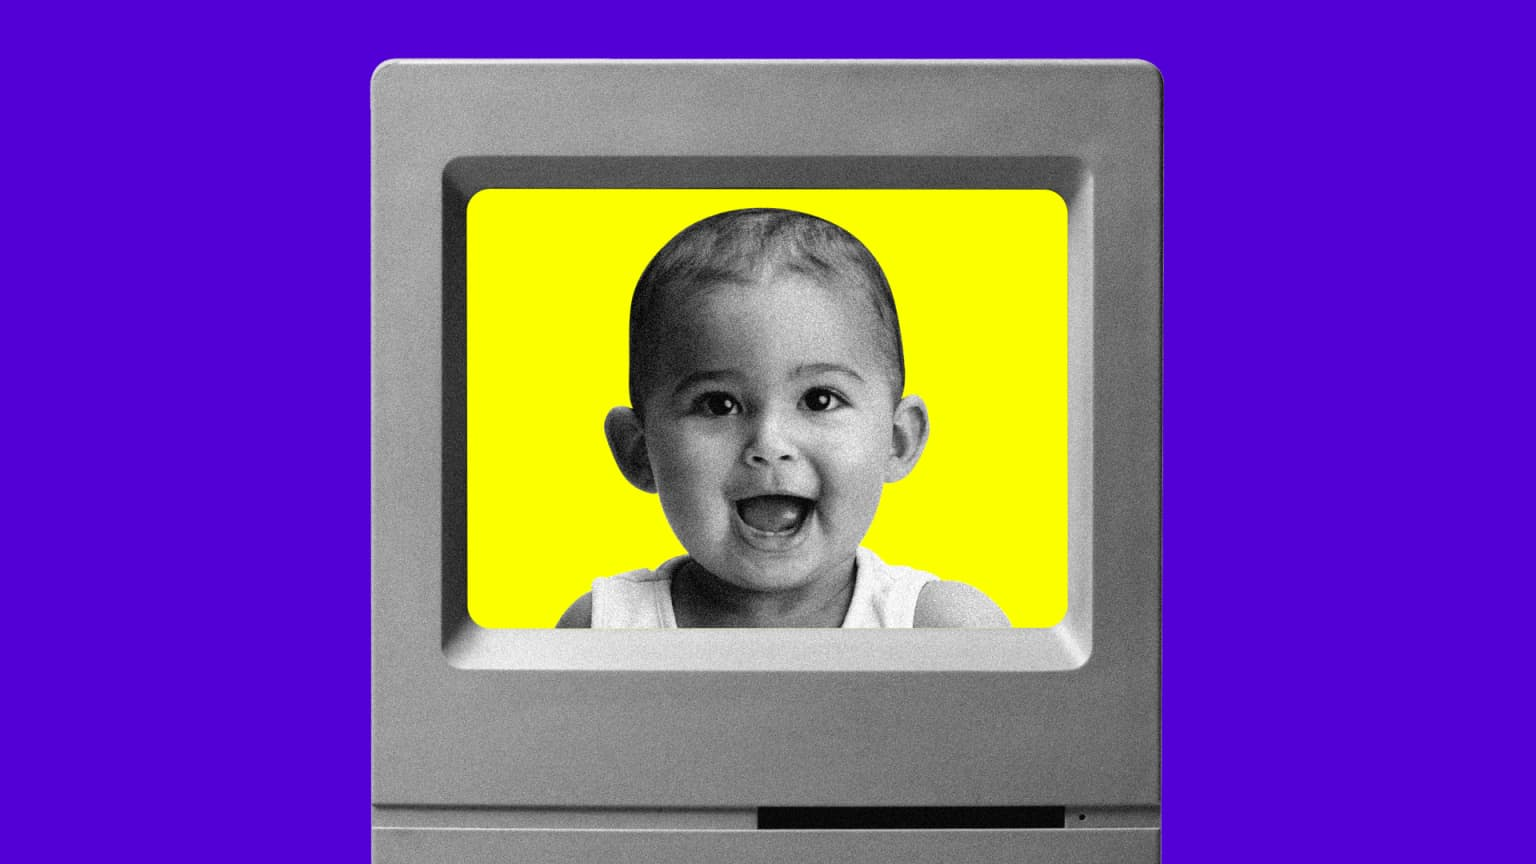 Why AI may need to think like a toddler